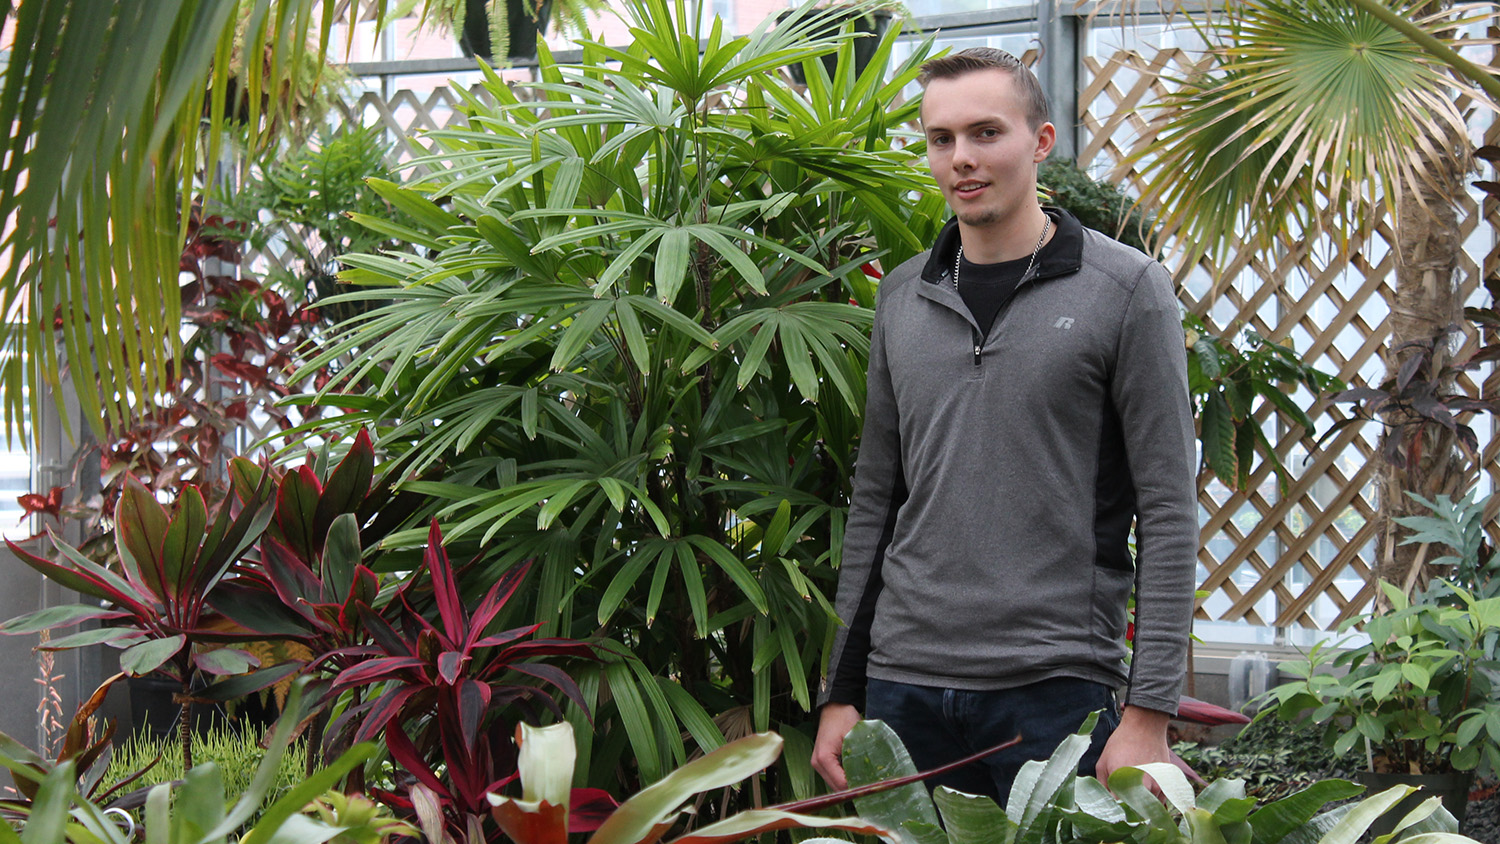 Student surrounded by tropical plants